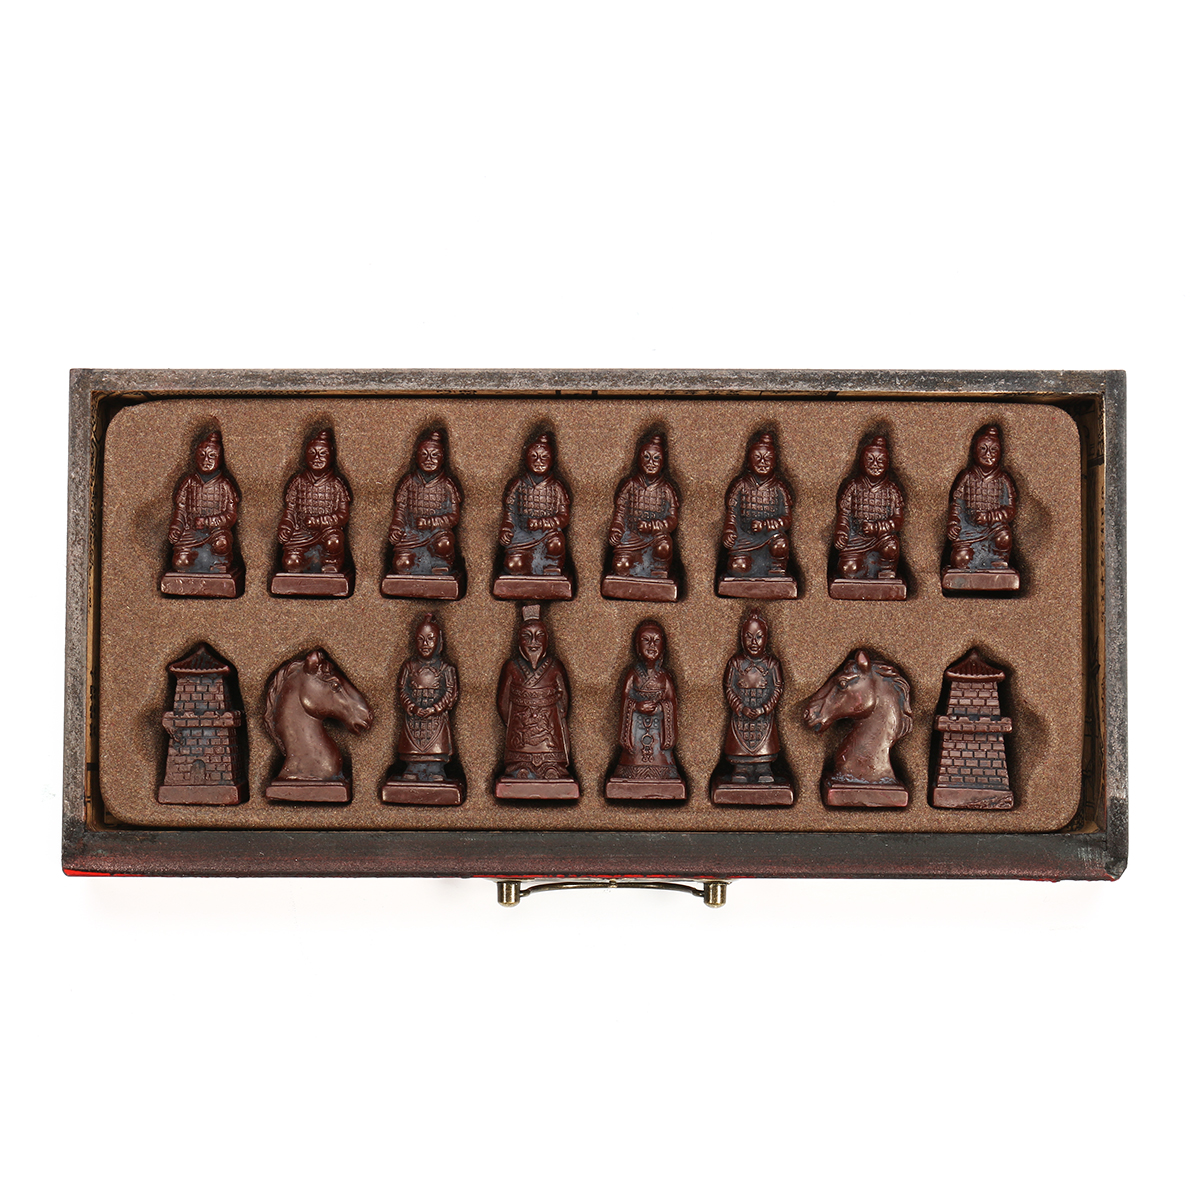 Vintage Wooden Chinese Chess Board Table Game Set Pieces Gift Toy Collectibles